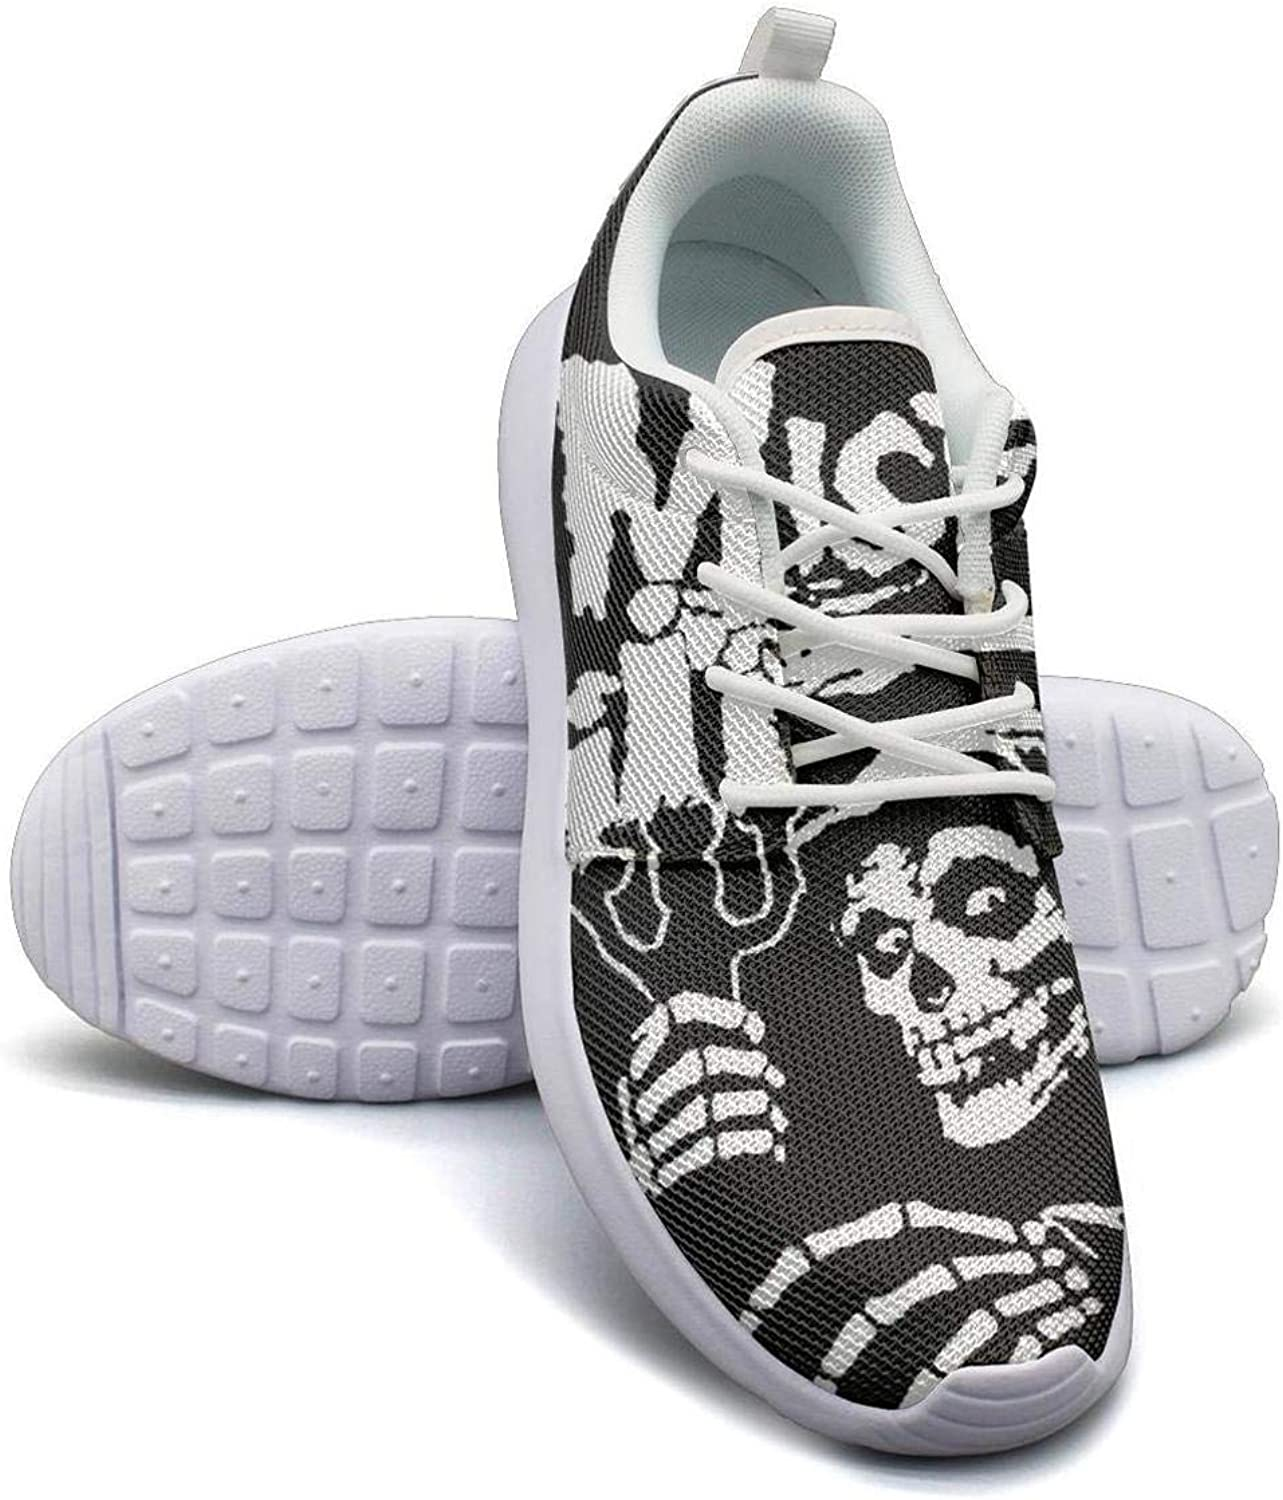 Sneakers for Womens Misfits-Art-Skull-Show- Skid-Proof Mesh Lace-Up Running shoes